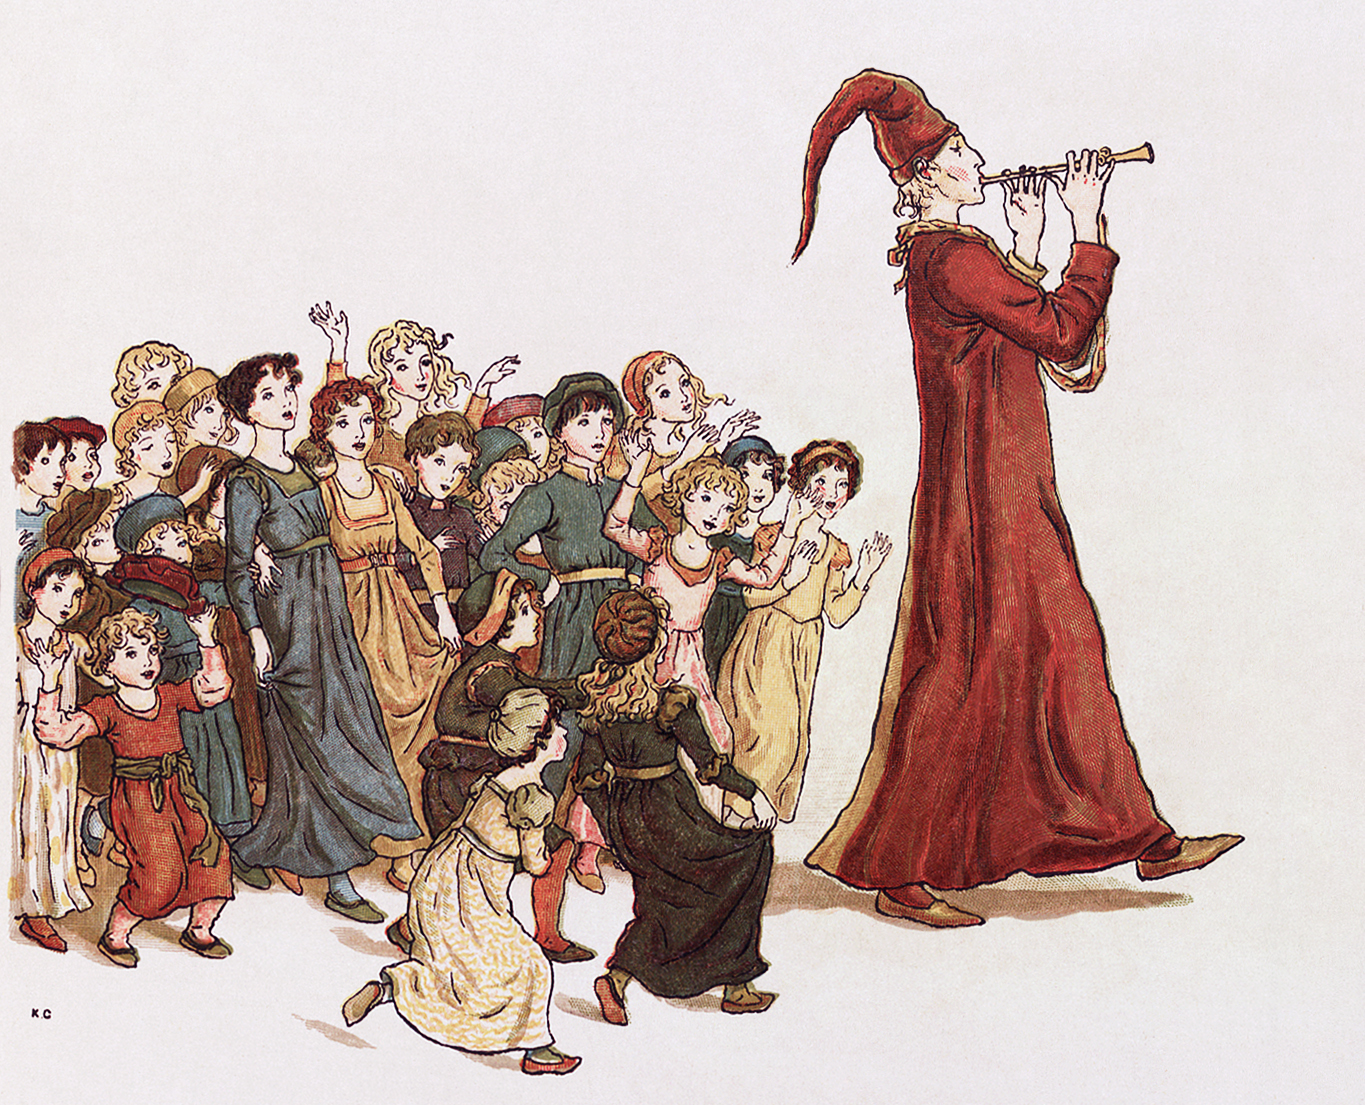 Pied Piper by Kate Greenaway/ Wikipedia Commons